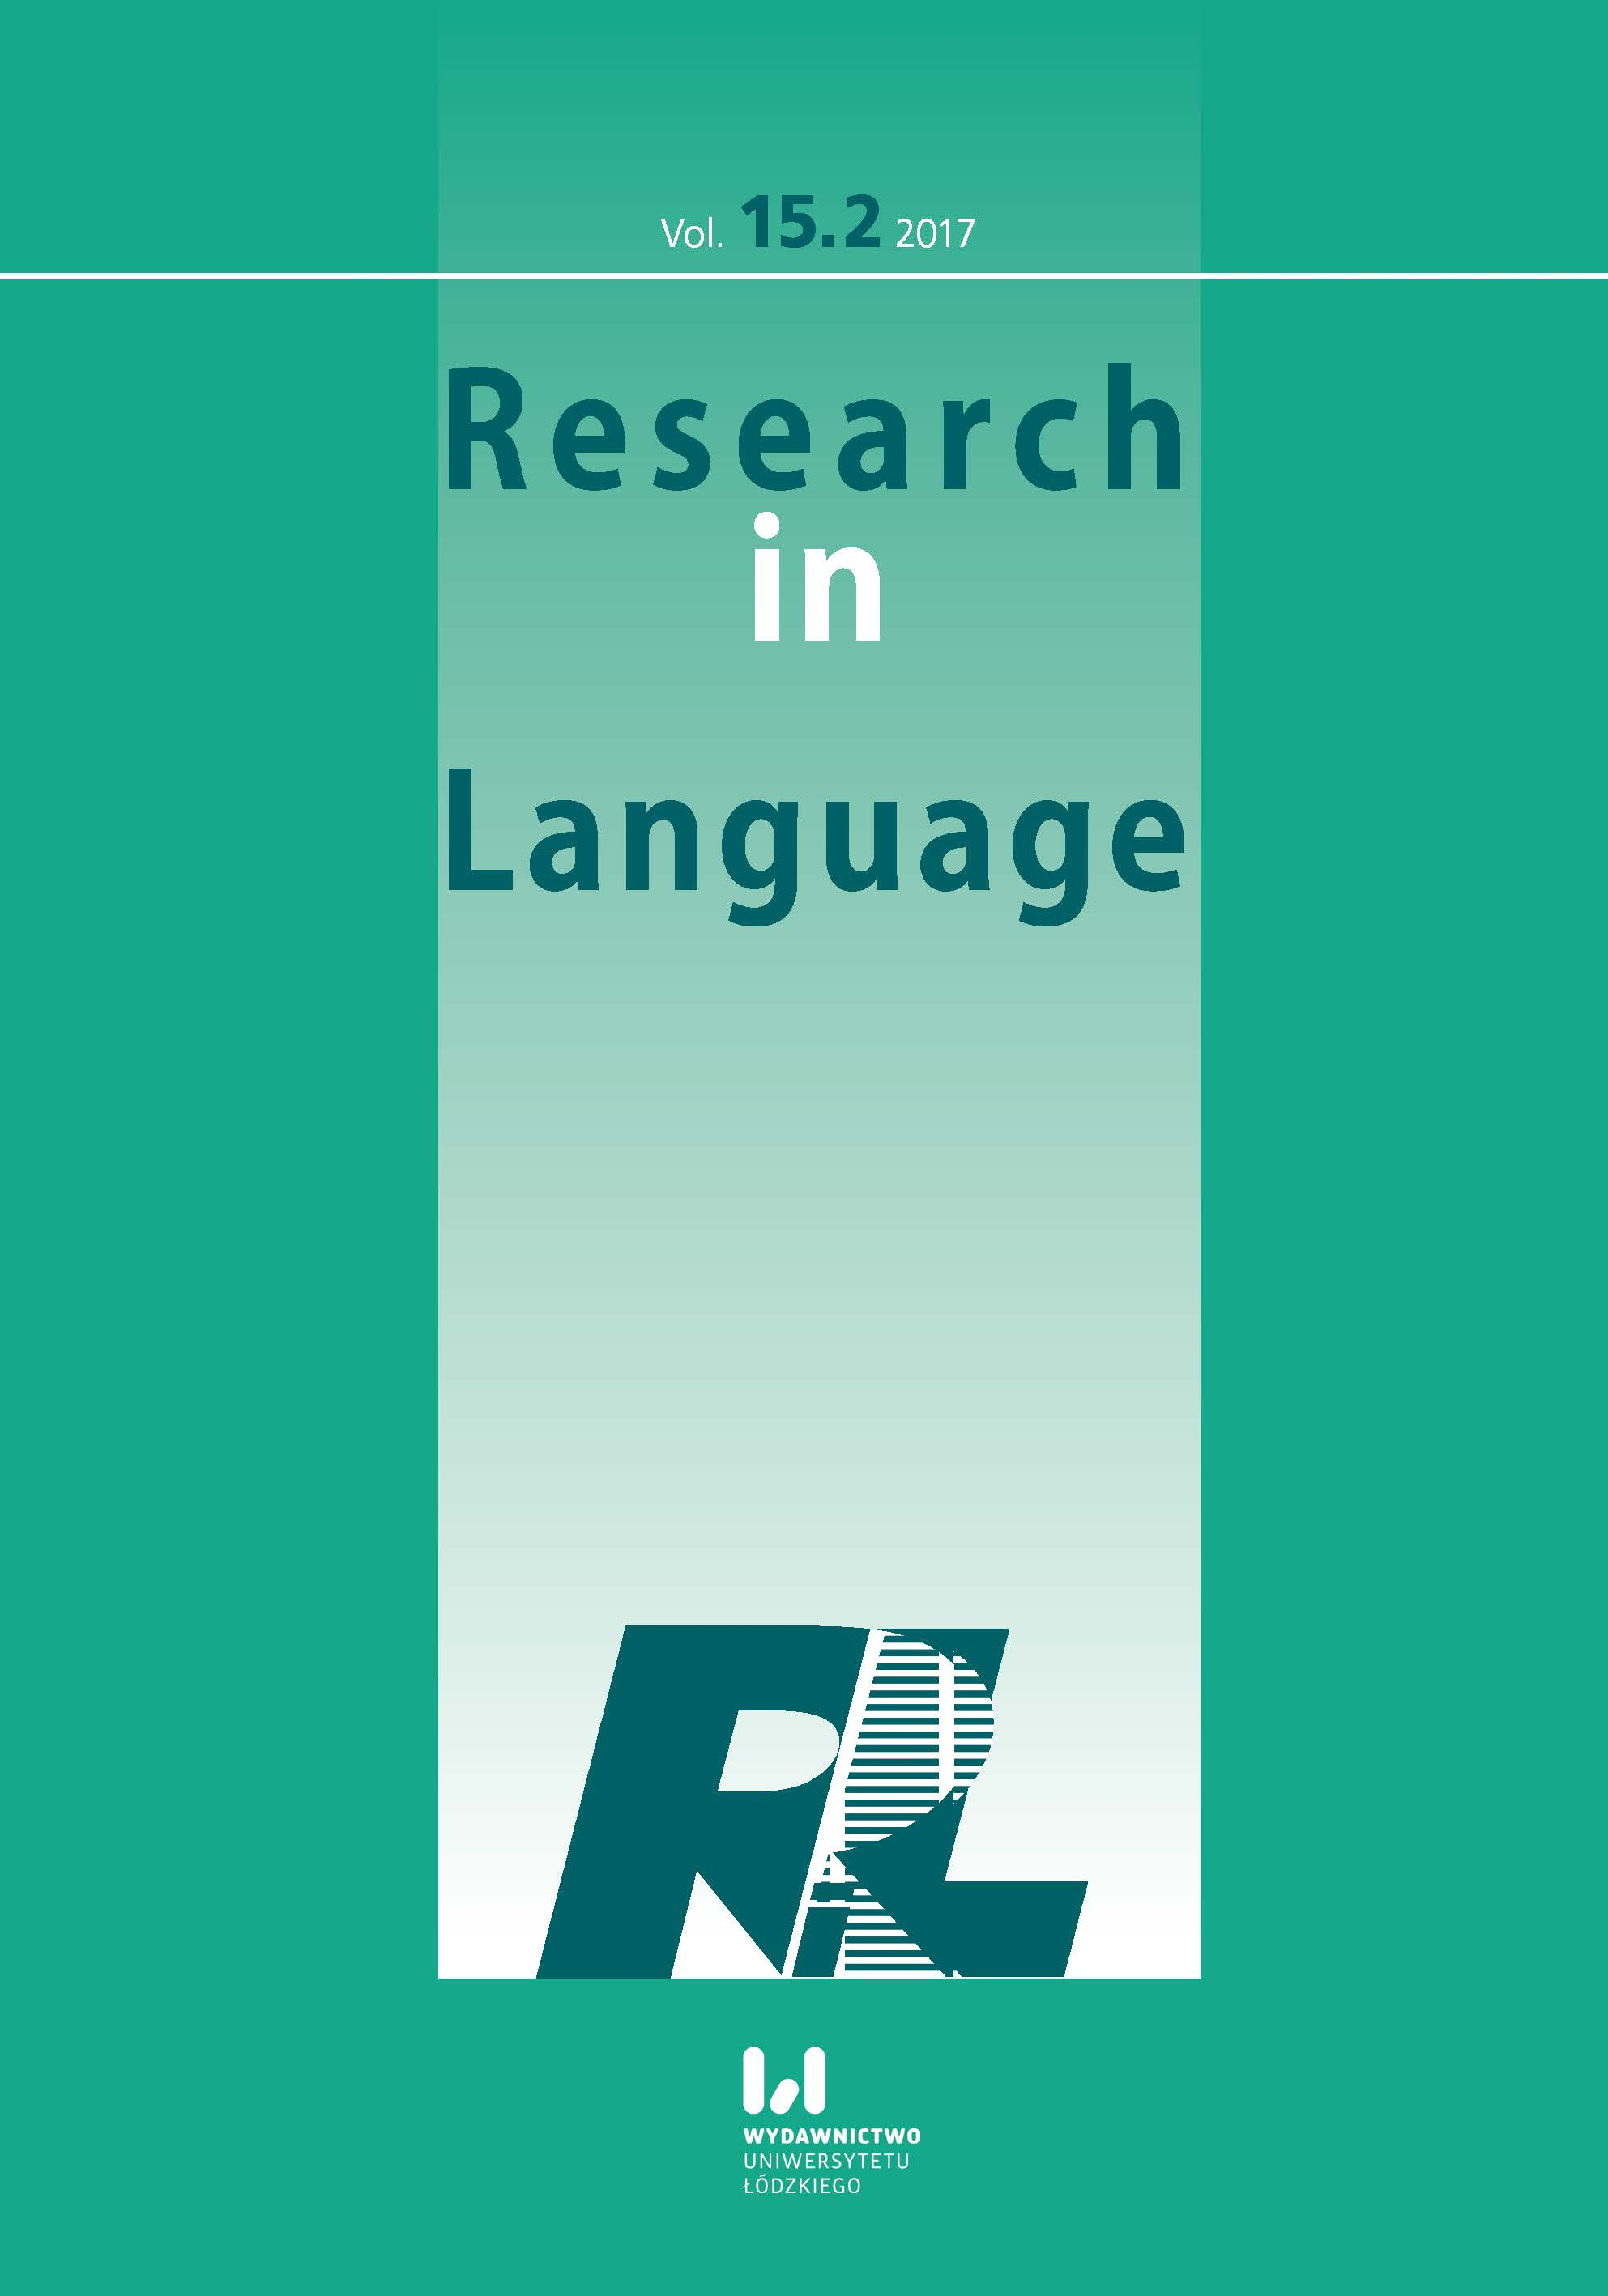 A Multivariate Study of T/V Forms in European Languages Based on a Parallel Corpus of Film Subtitles